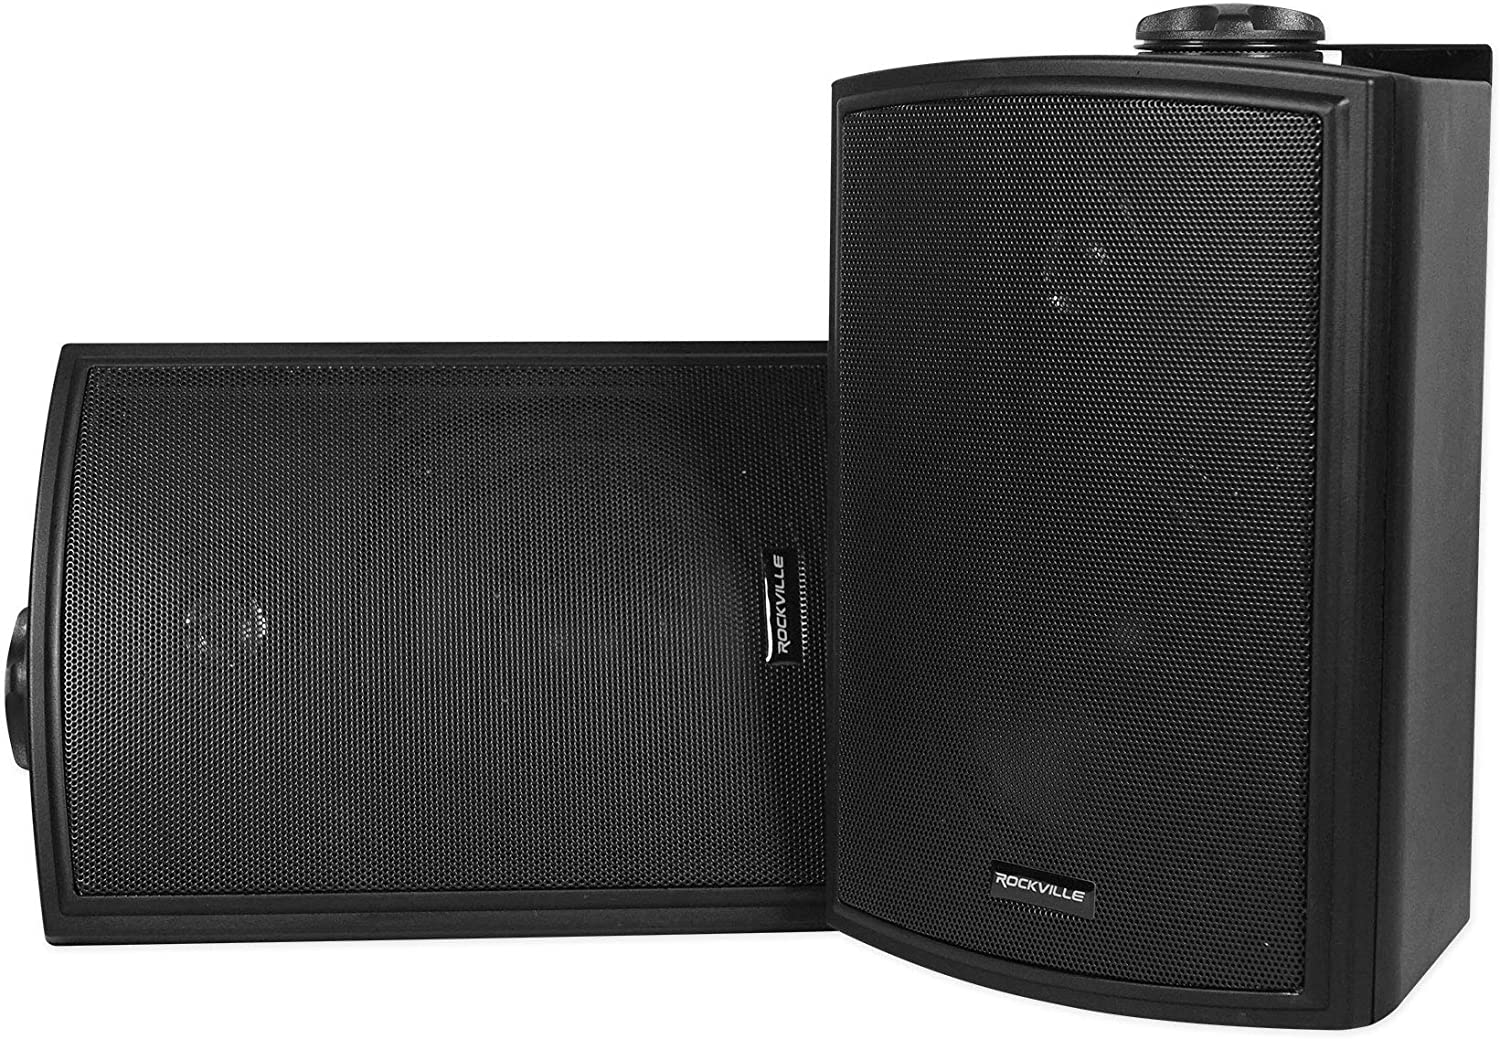 "2 Rockville HP5S-8 BK 5.25"" Outdoor/Indoor Swivel Home Theater Speakers in Black 81g6ZepUNbL"